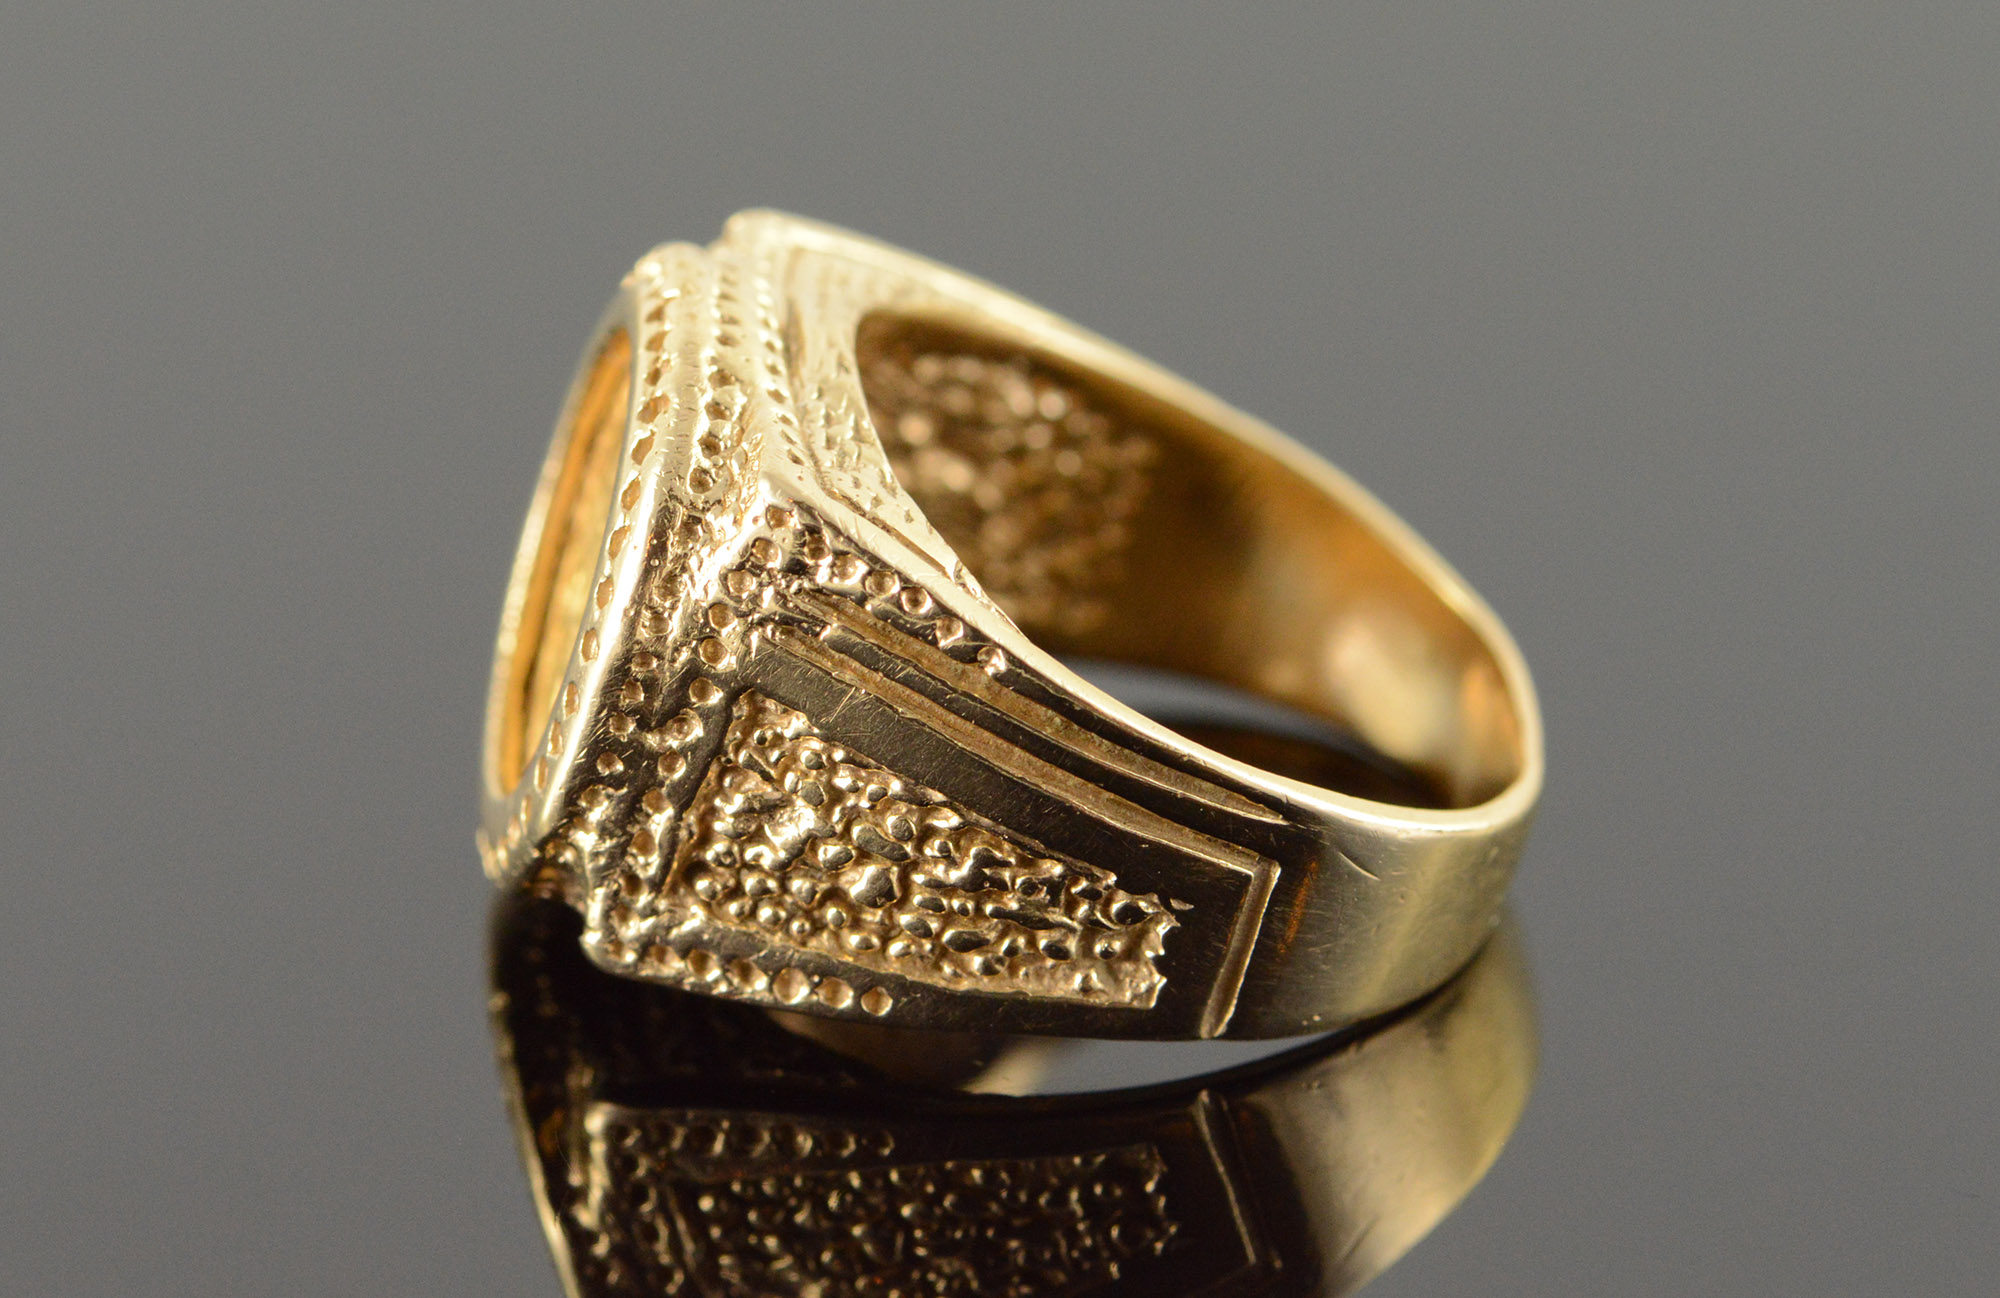 10k 11 1g 1945 Dos Peso Mexico Mexican Vintage Detailed Yellow Gold Ring Size 7 75